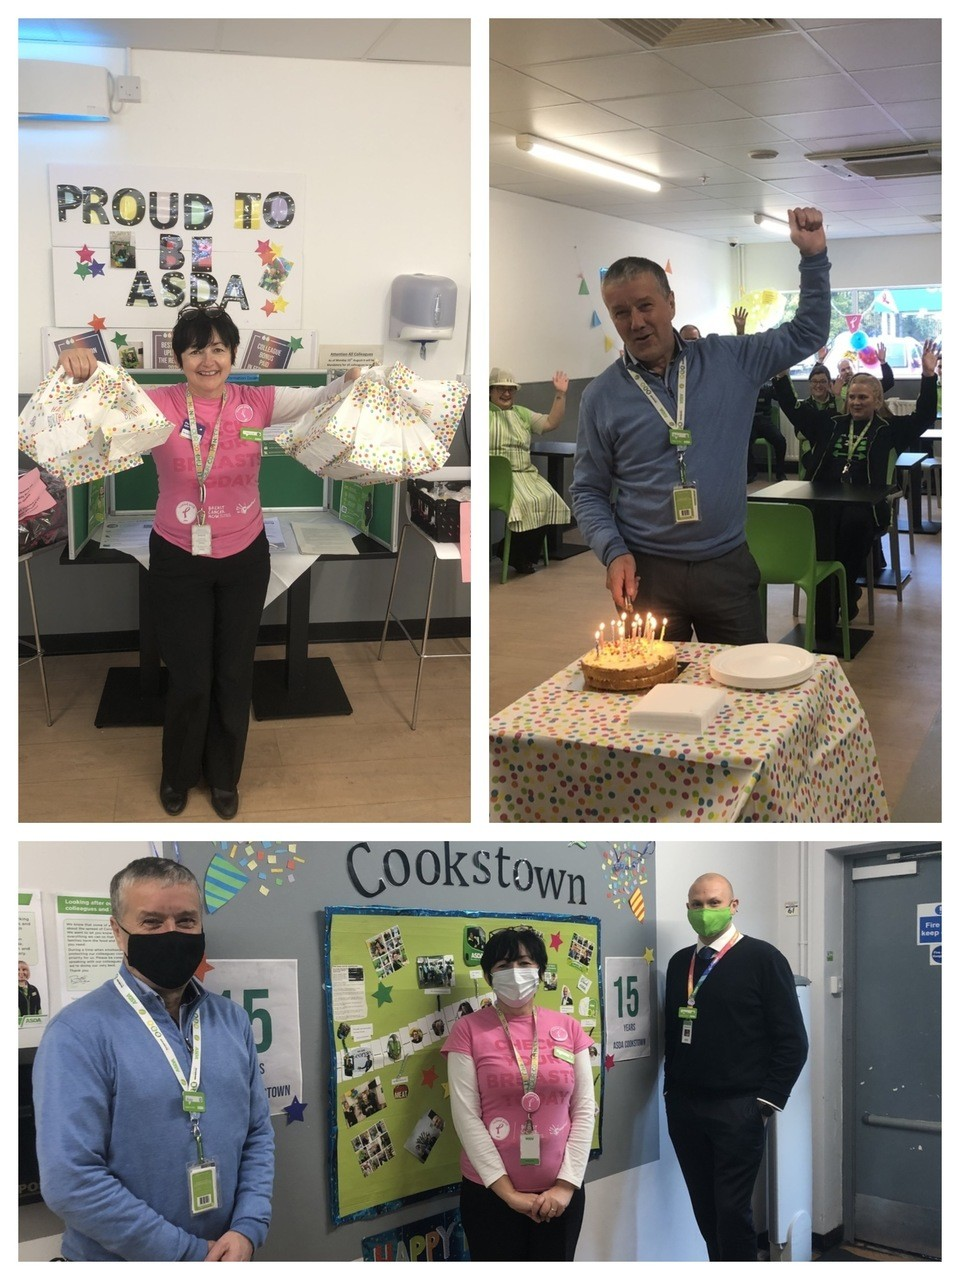 Cookstown colleagues celebrate store's 15th birthday | Asda Cookstown